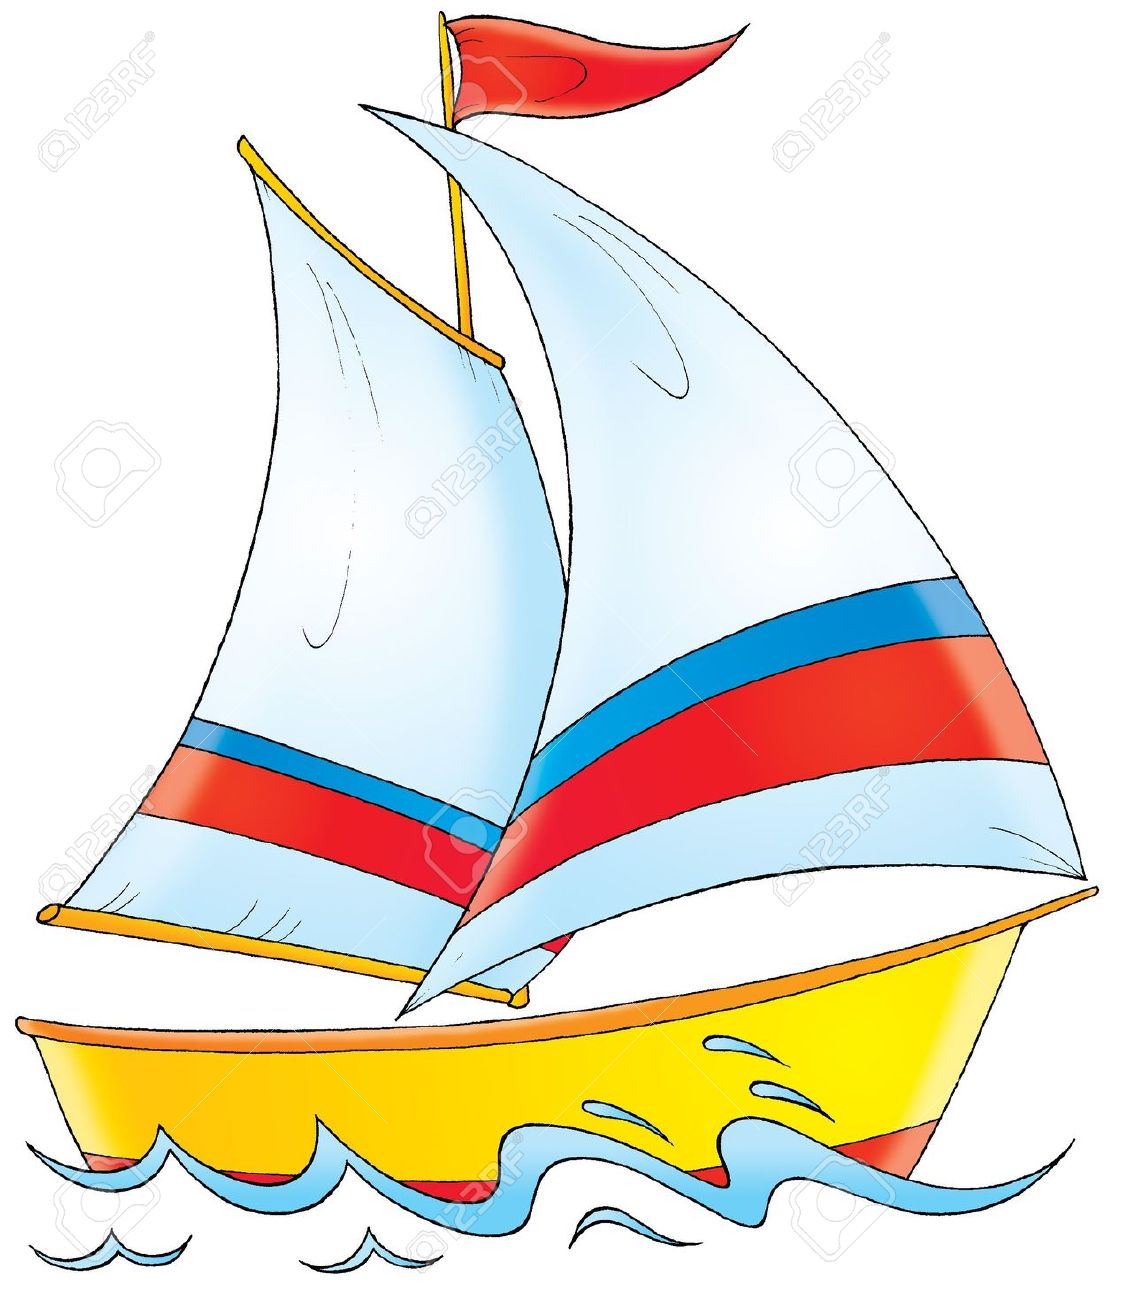 C:\Users\User\Downloads\2599079-Yacht-Stock-Photo-boat-cartoon-clipart.jpg